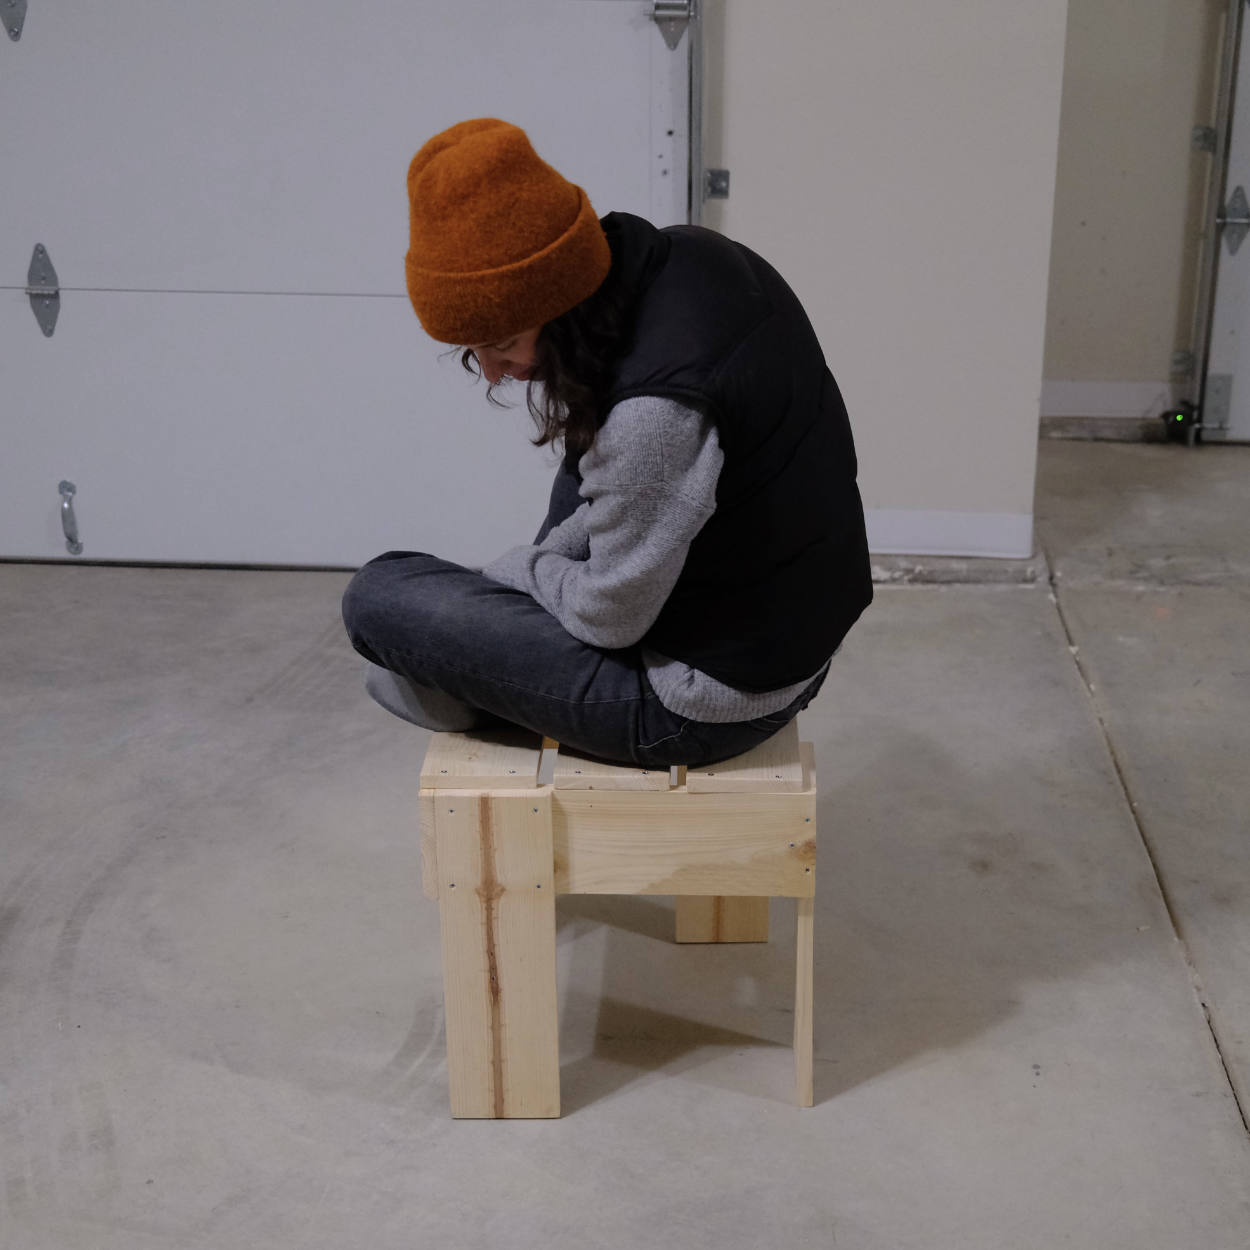 A woman in an orange beanie sitting on a pine stool made in Rietveld's crate style